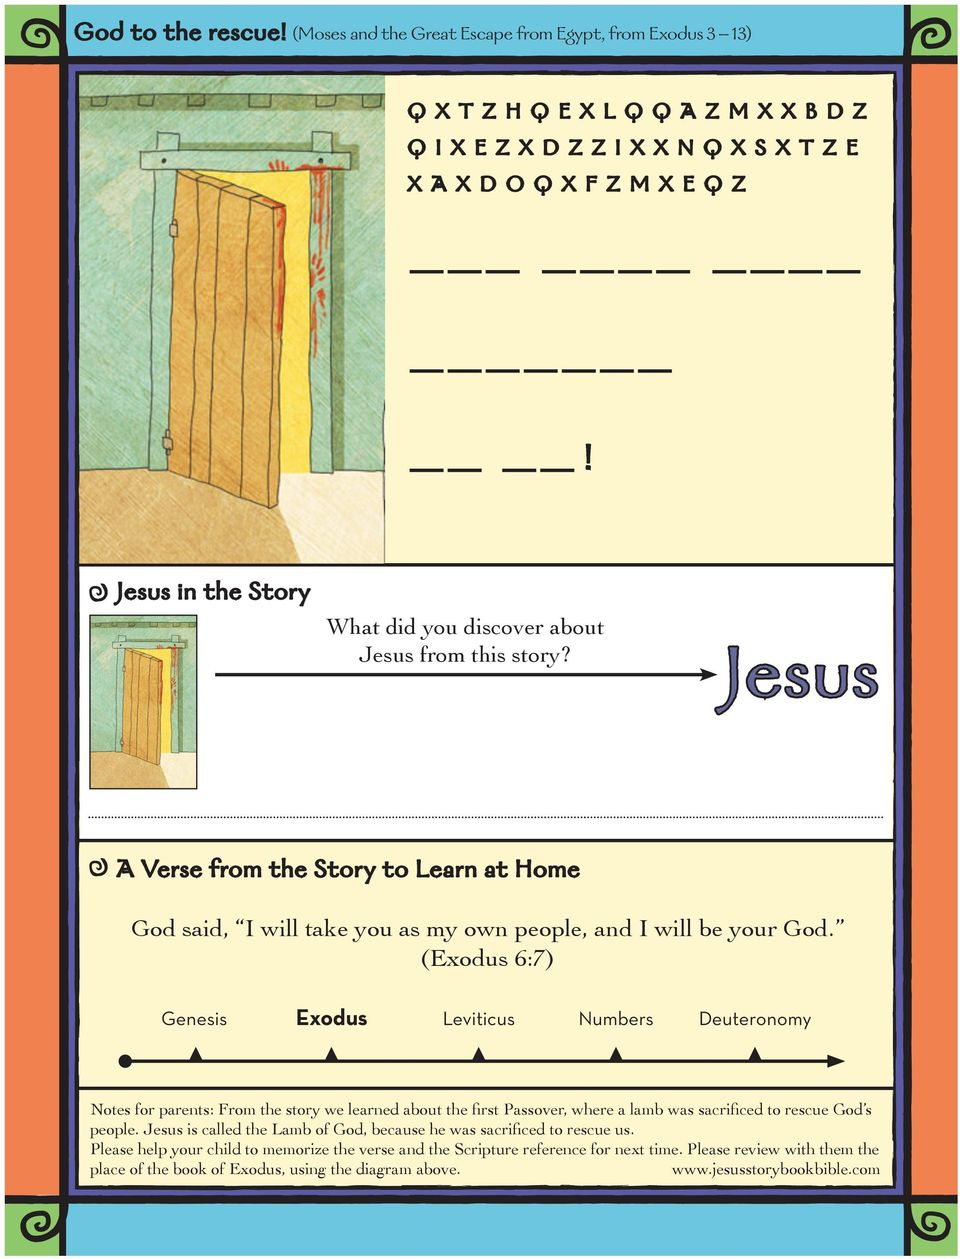 Jesus A Verse from the Story to Learn at Home God said, I will take you as my own people, and I will be your God.